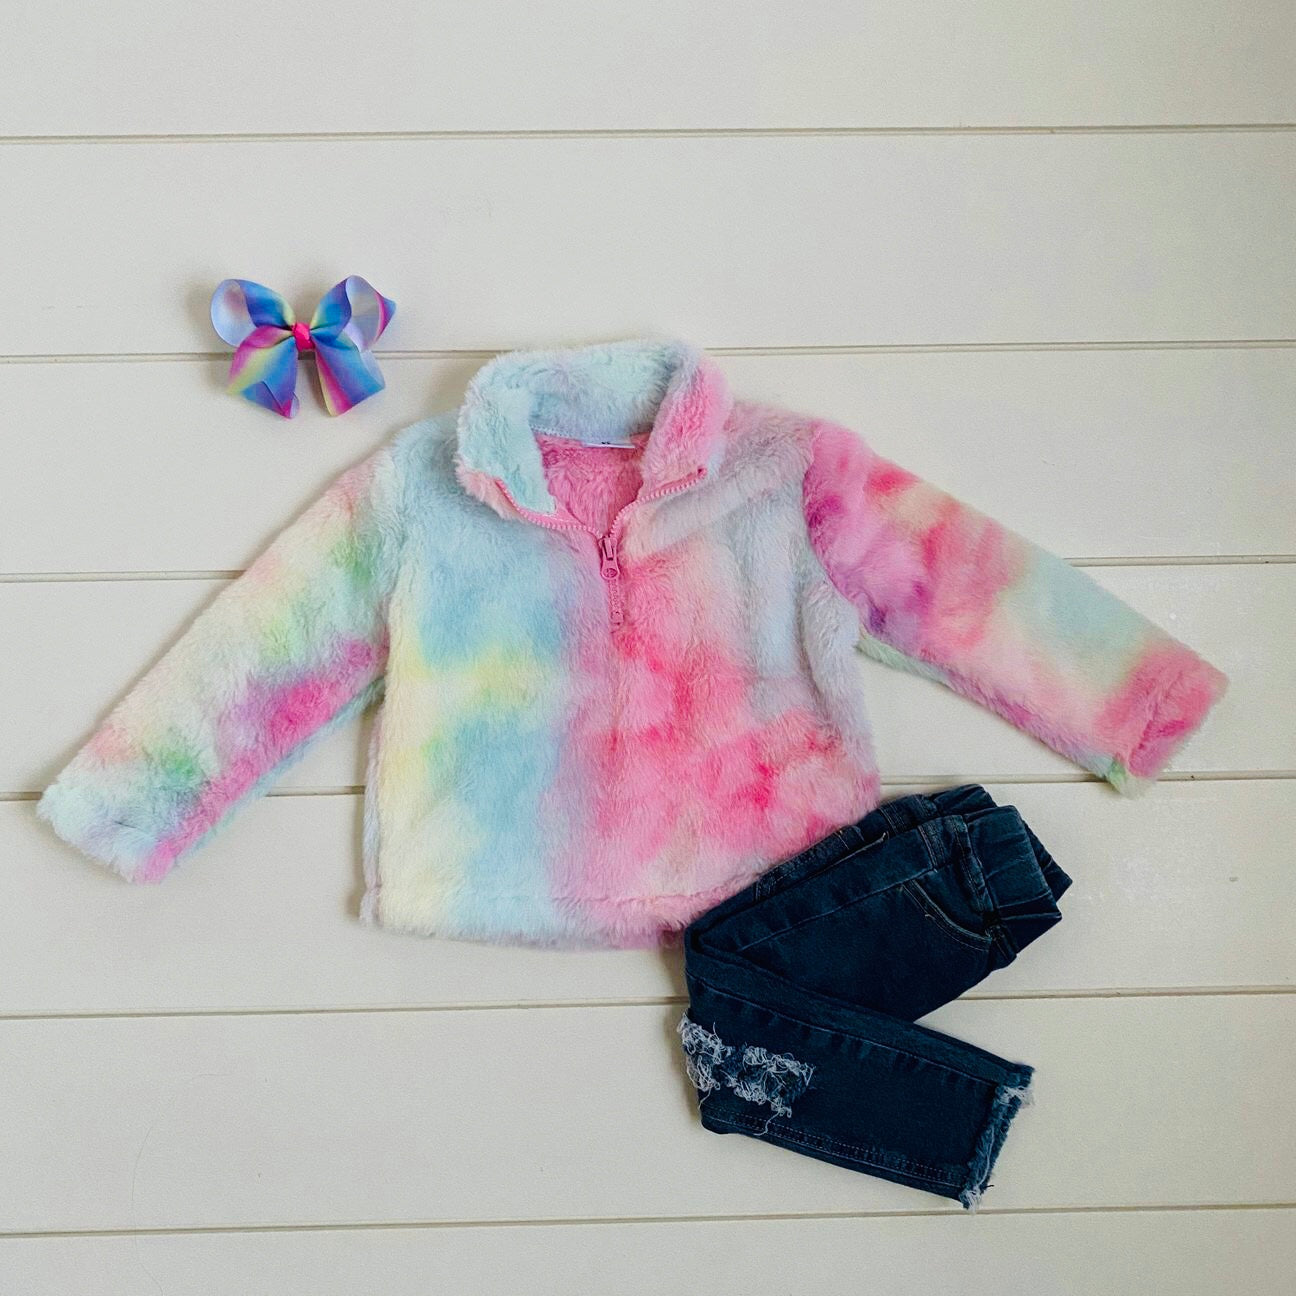 TIE DYE FLEECE HOODED PULLOVER